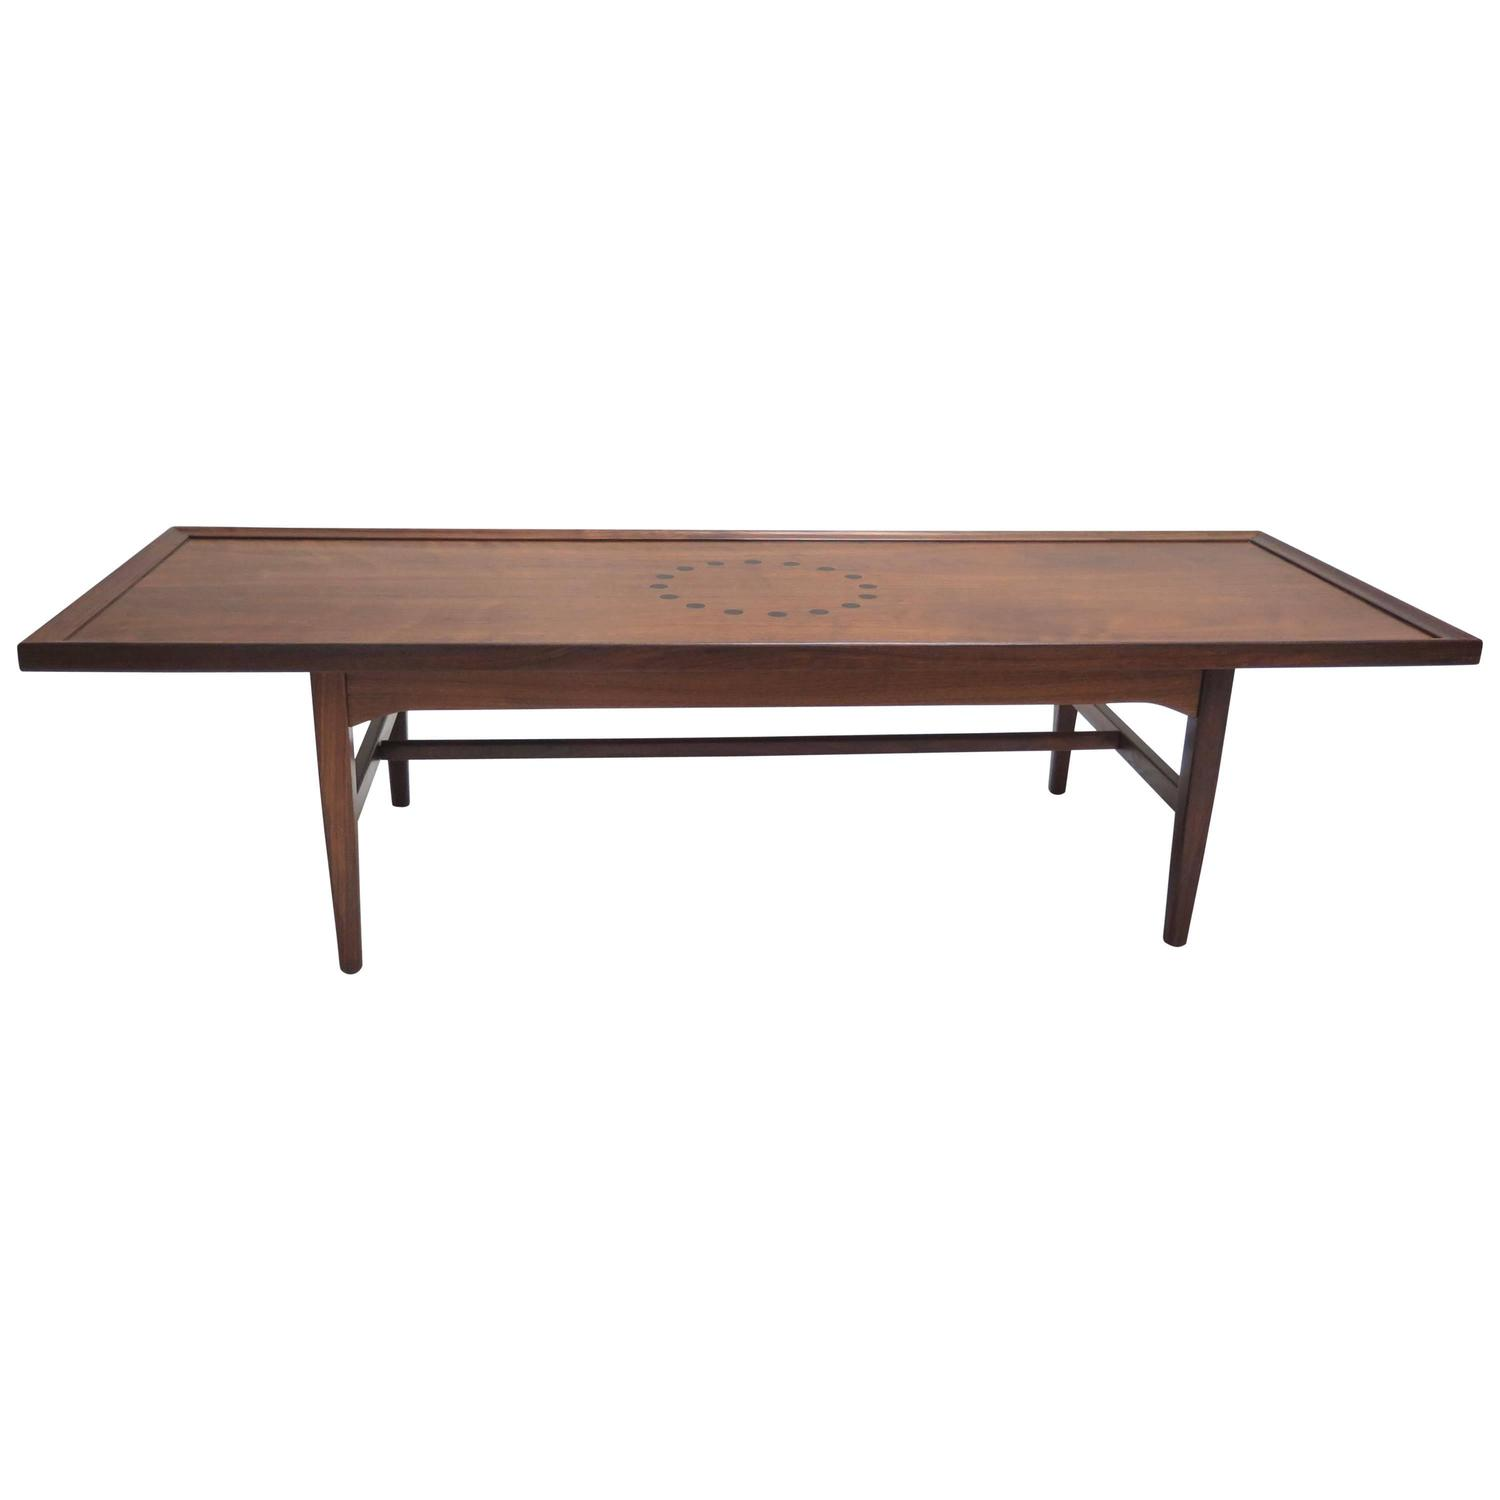 Drexel Walnut Coffee Table With Circle Inlay For Sale At 1stdibs